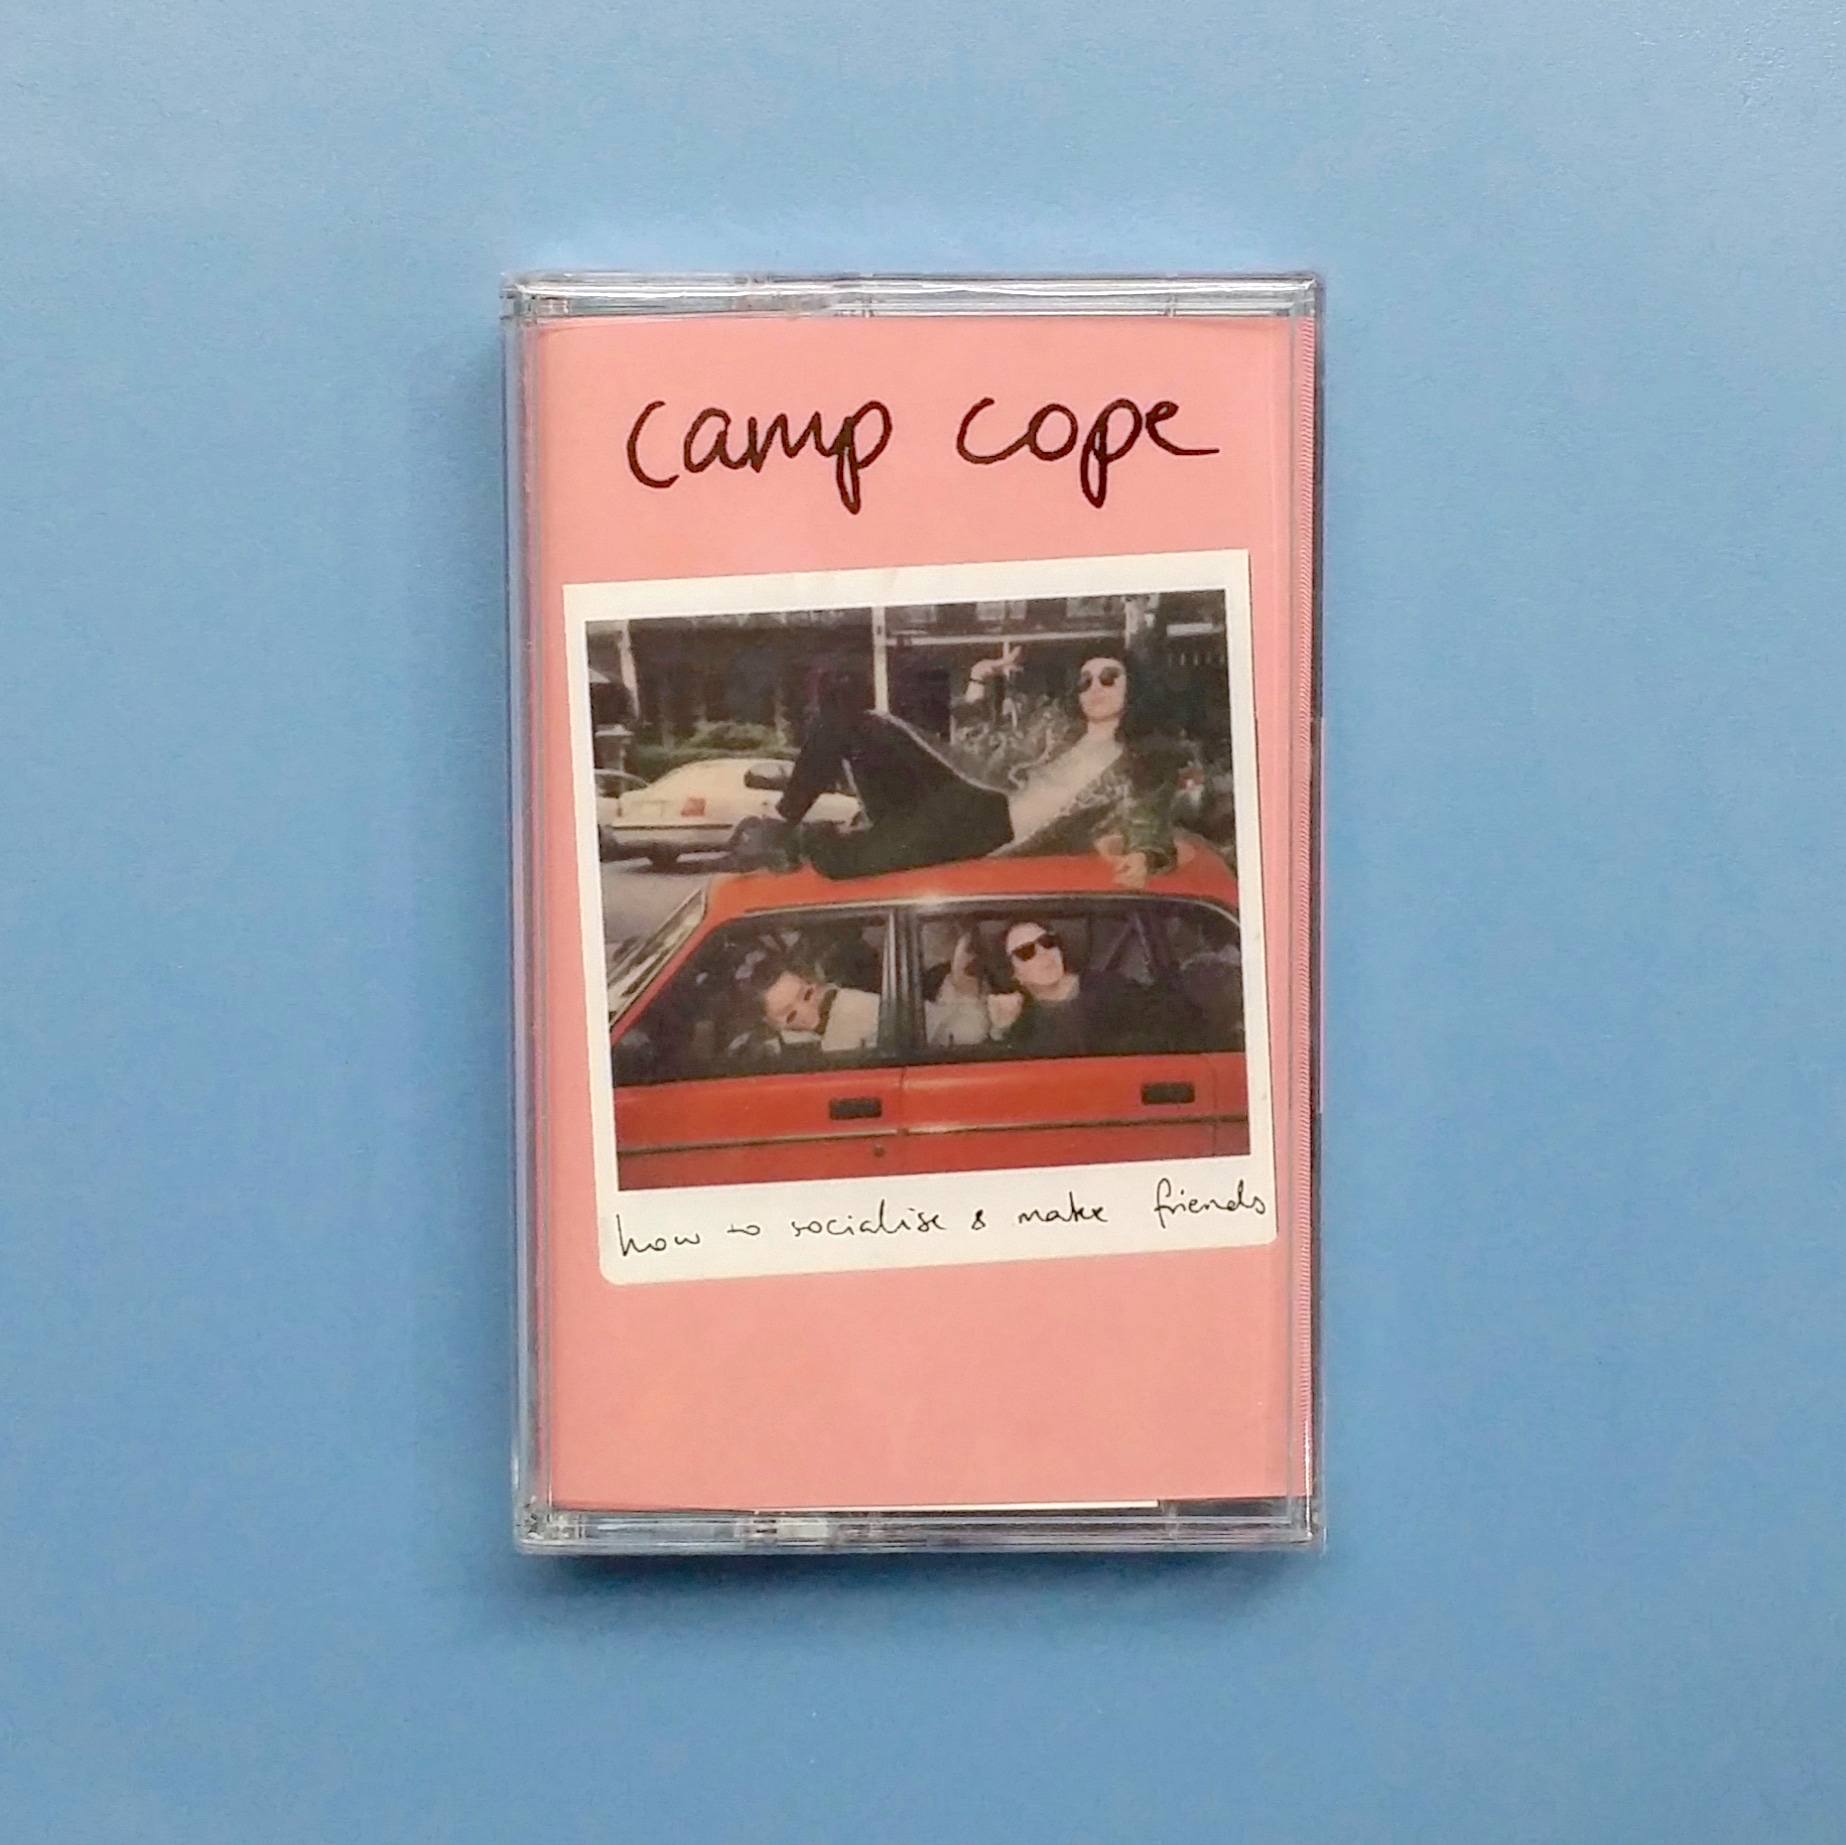 [SOLD] Camp Cope - How to Socialise & Make Friends (Run for Cover Records)